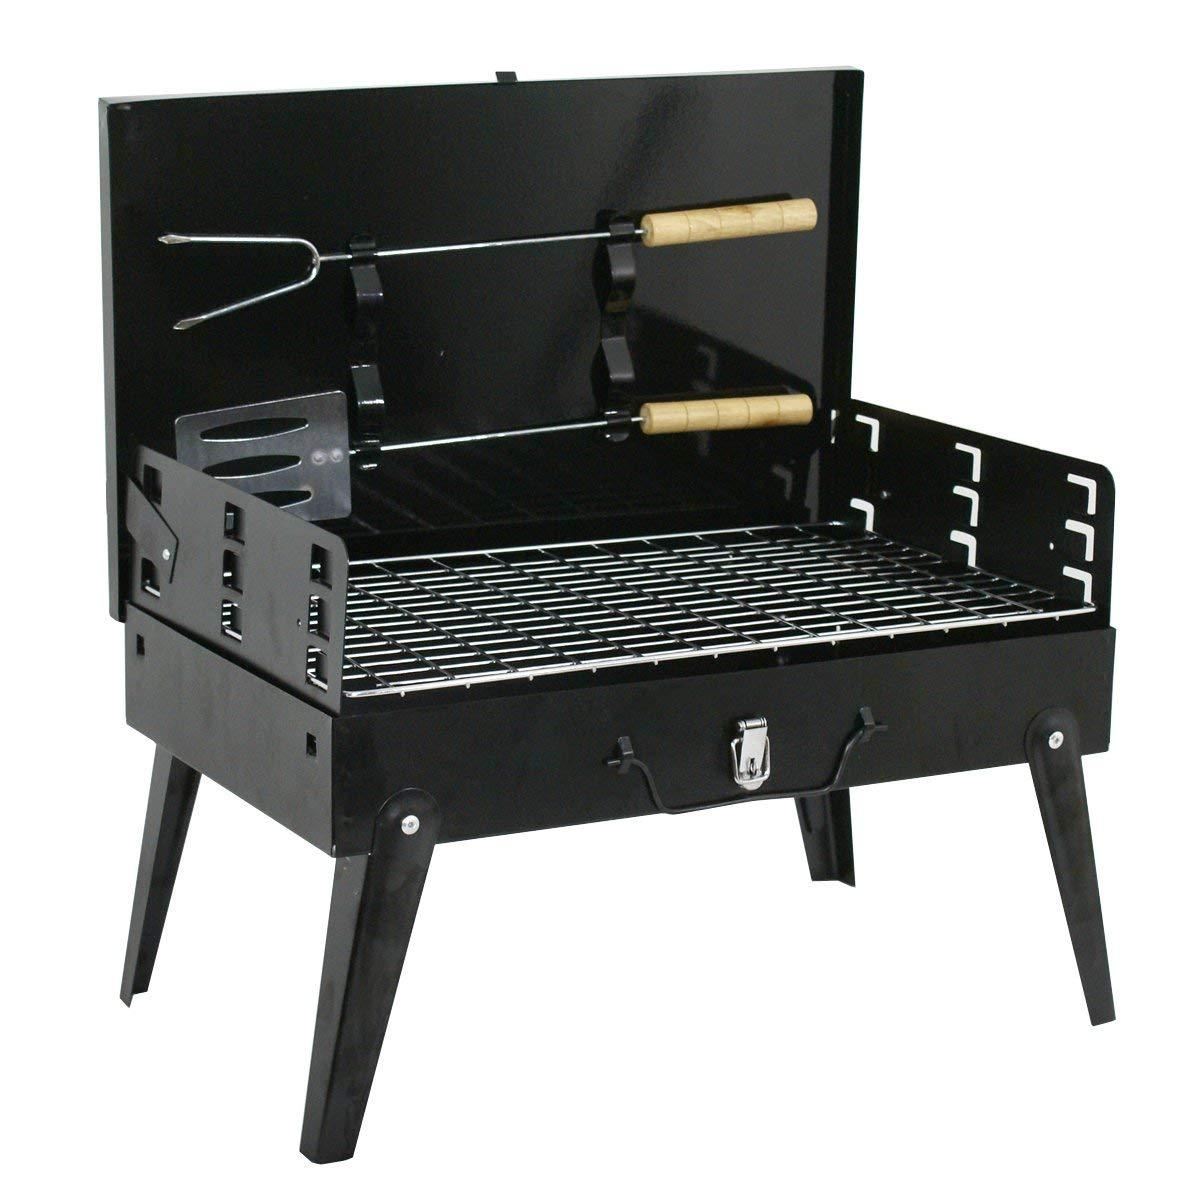 Foldable BBQ do it yourself 90